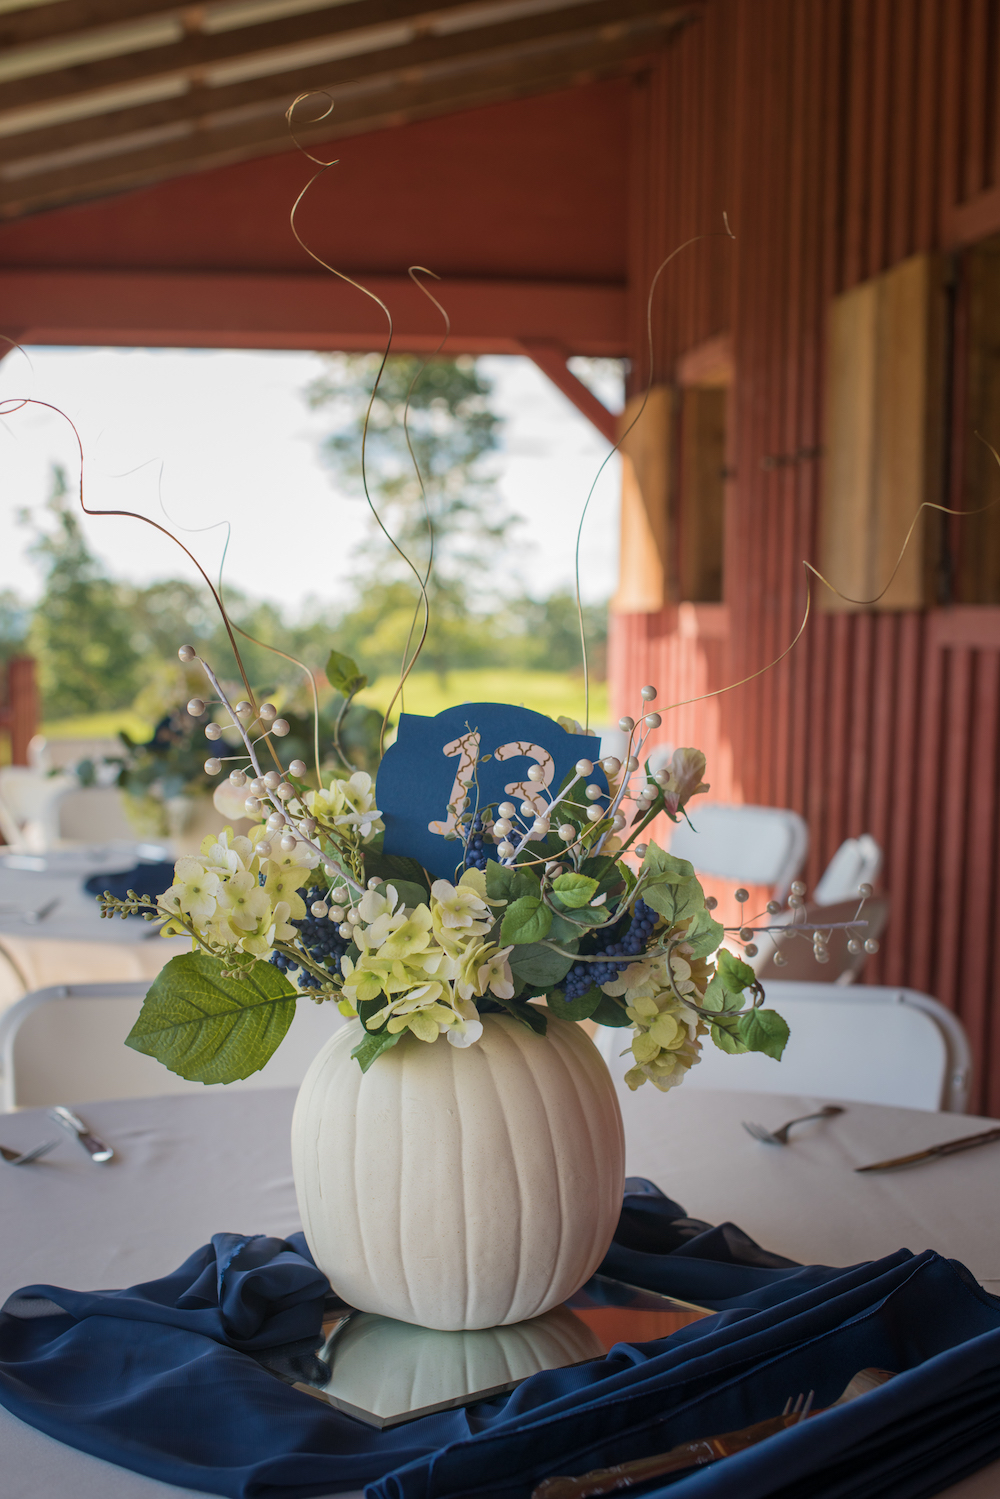 Ashley and Brian's Pink and Navy October Wedding at The Barn at Tatum Acres, North Georgia Barn Wedding Venue, Georgia Fall Wedding DIY